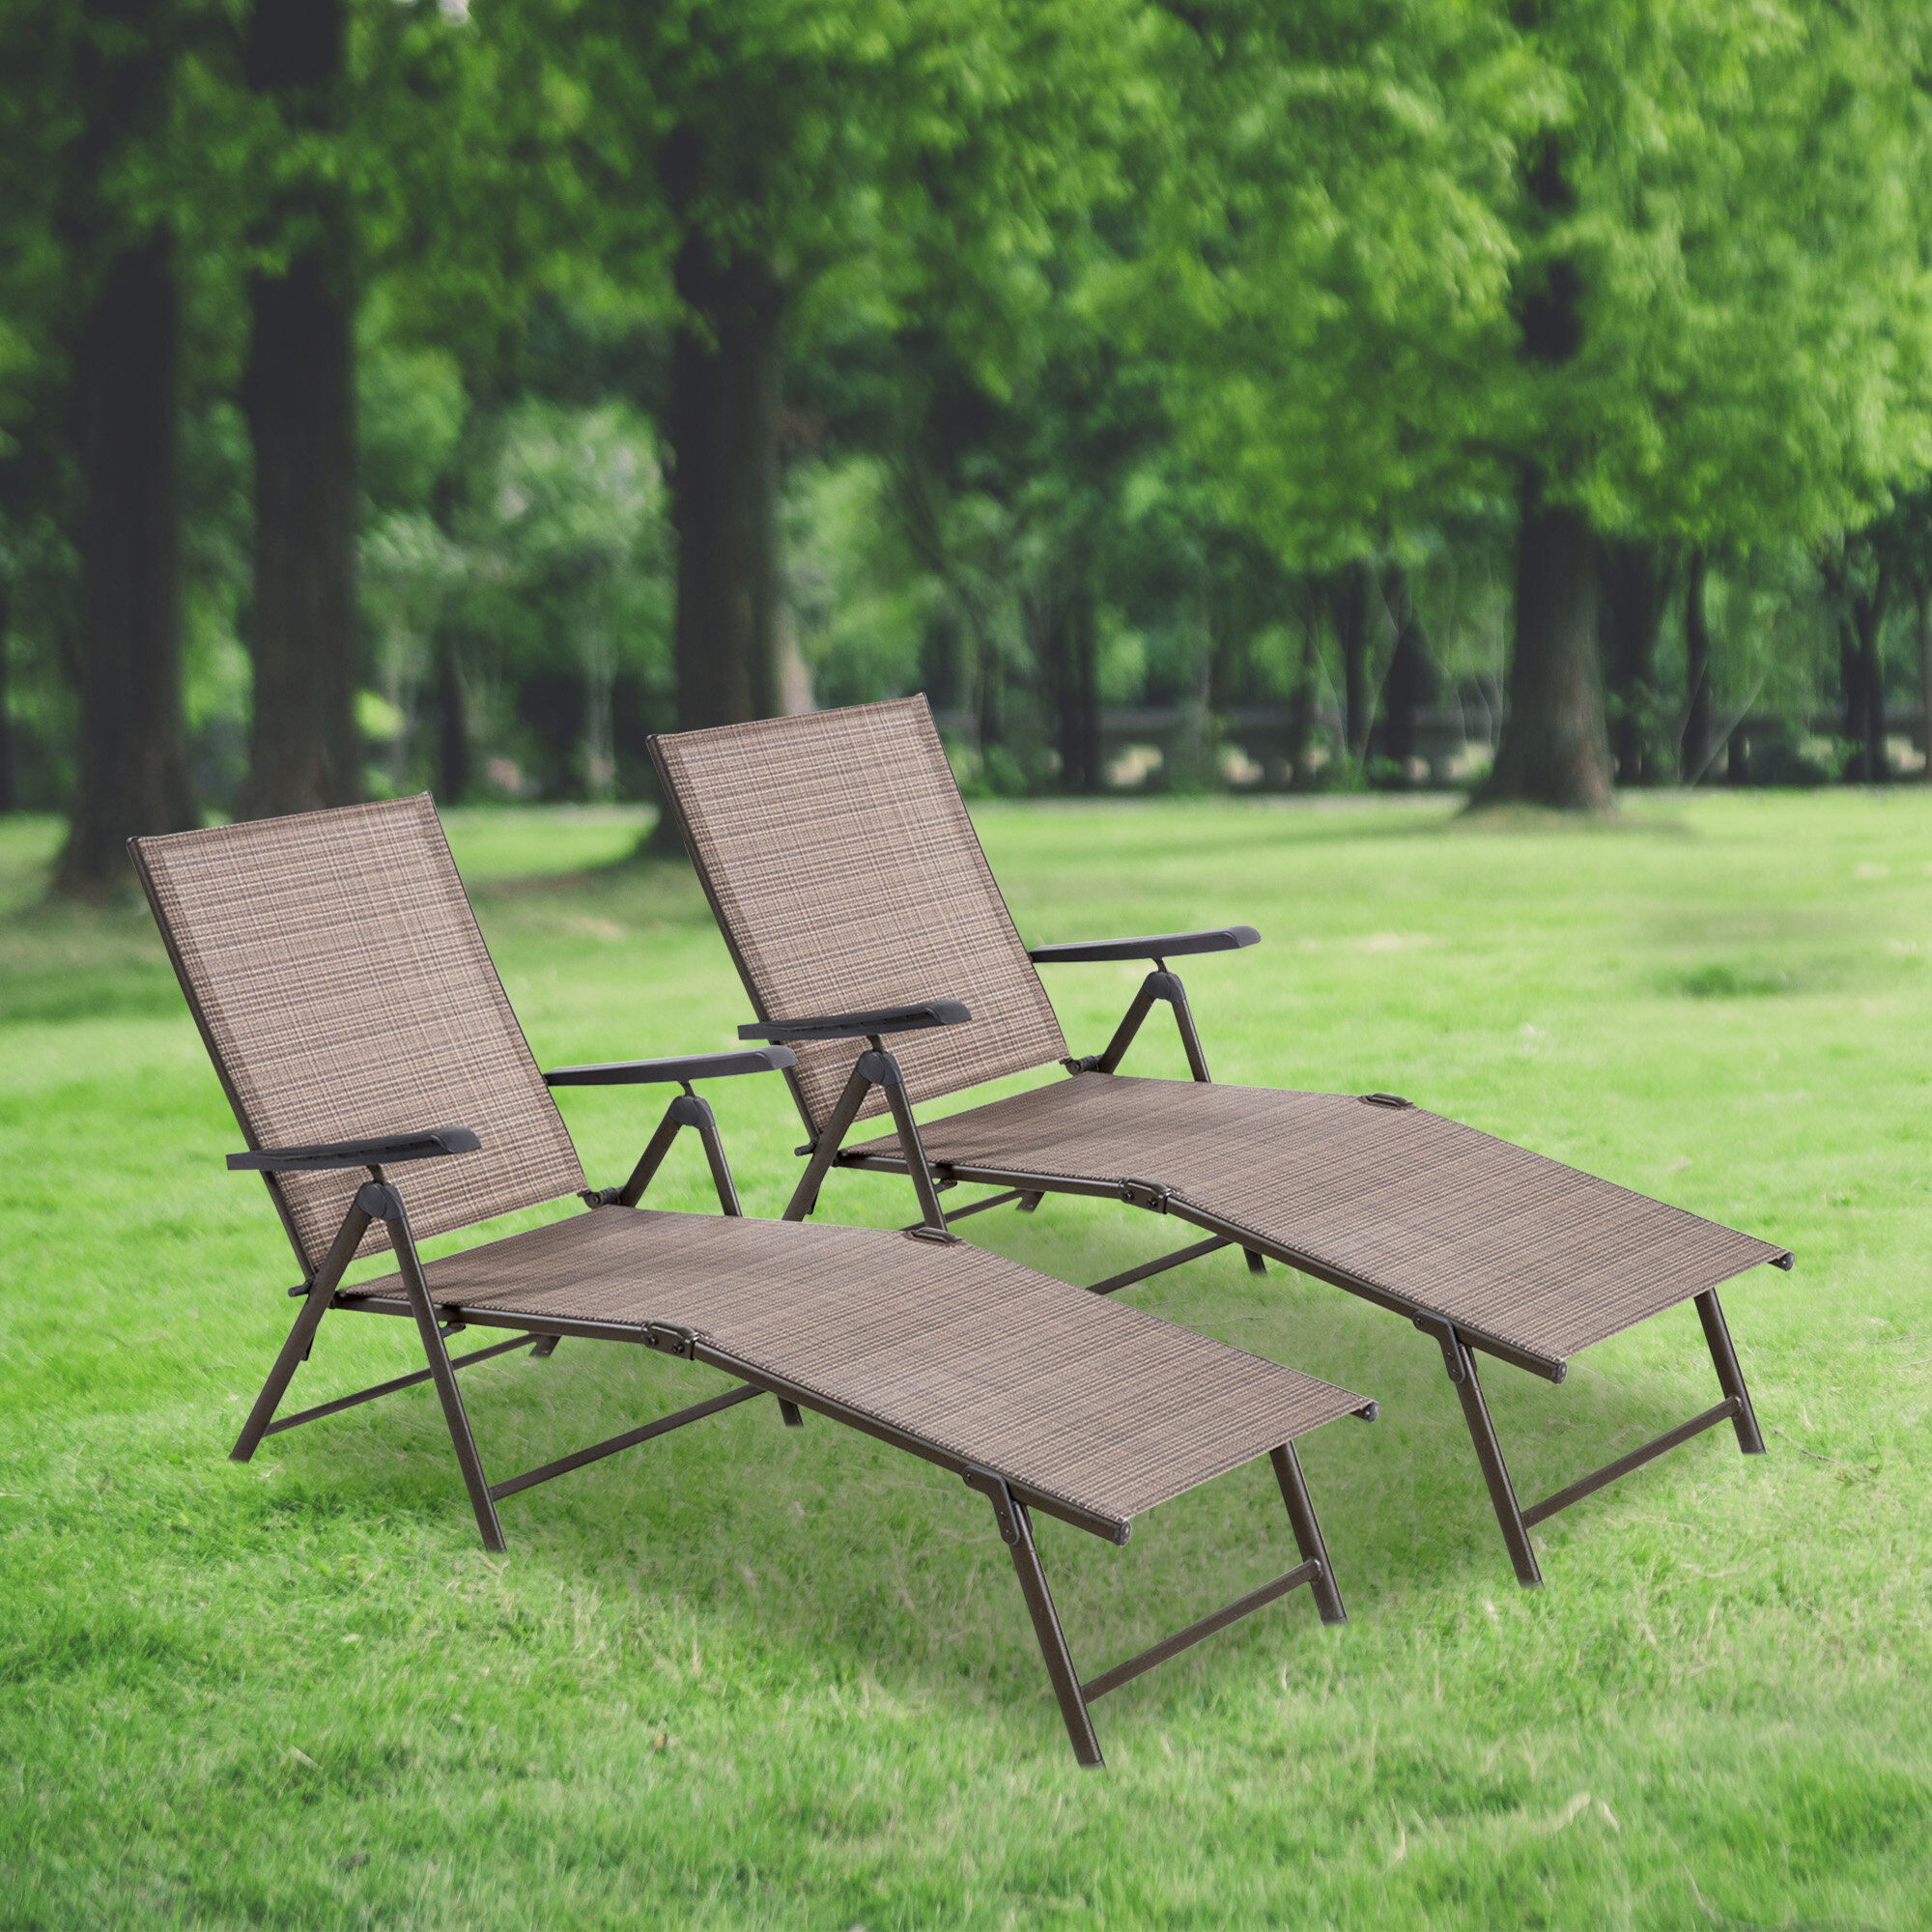 Double Chaise Teak Outdoor Chaise Lounge Chairs You Ll Love In 2021 Wayfair